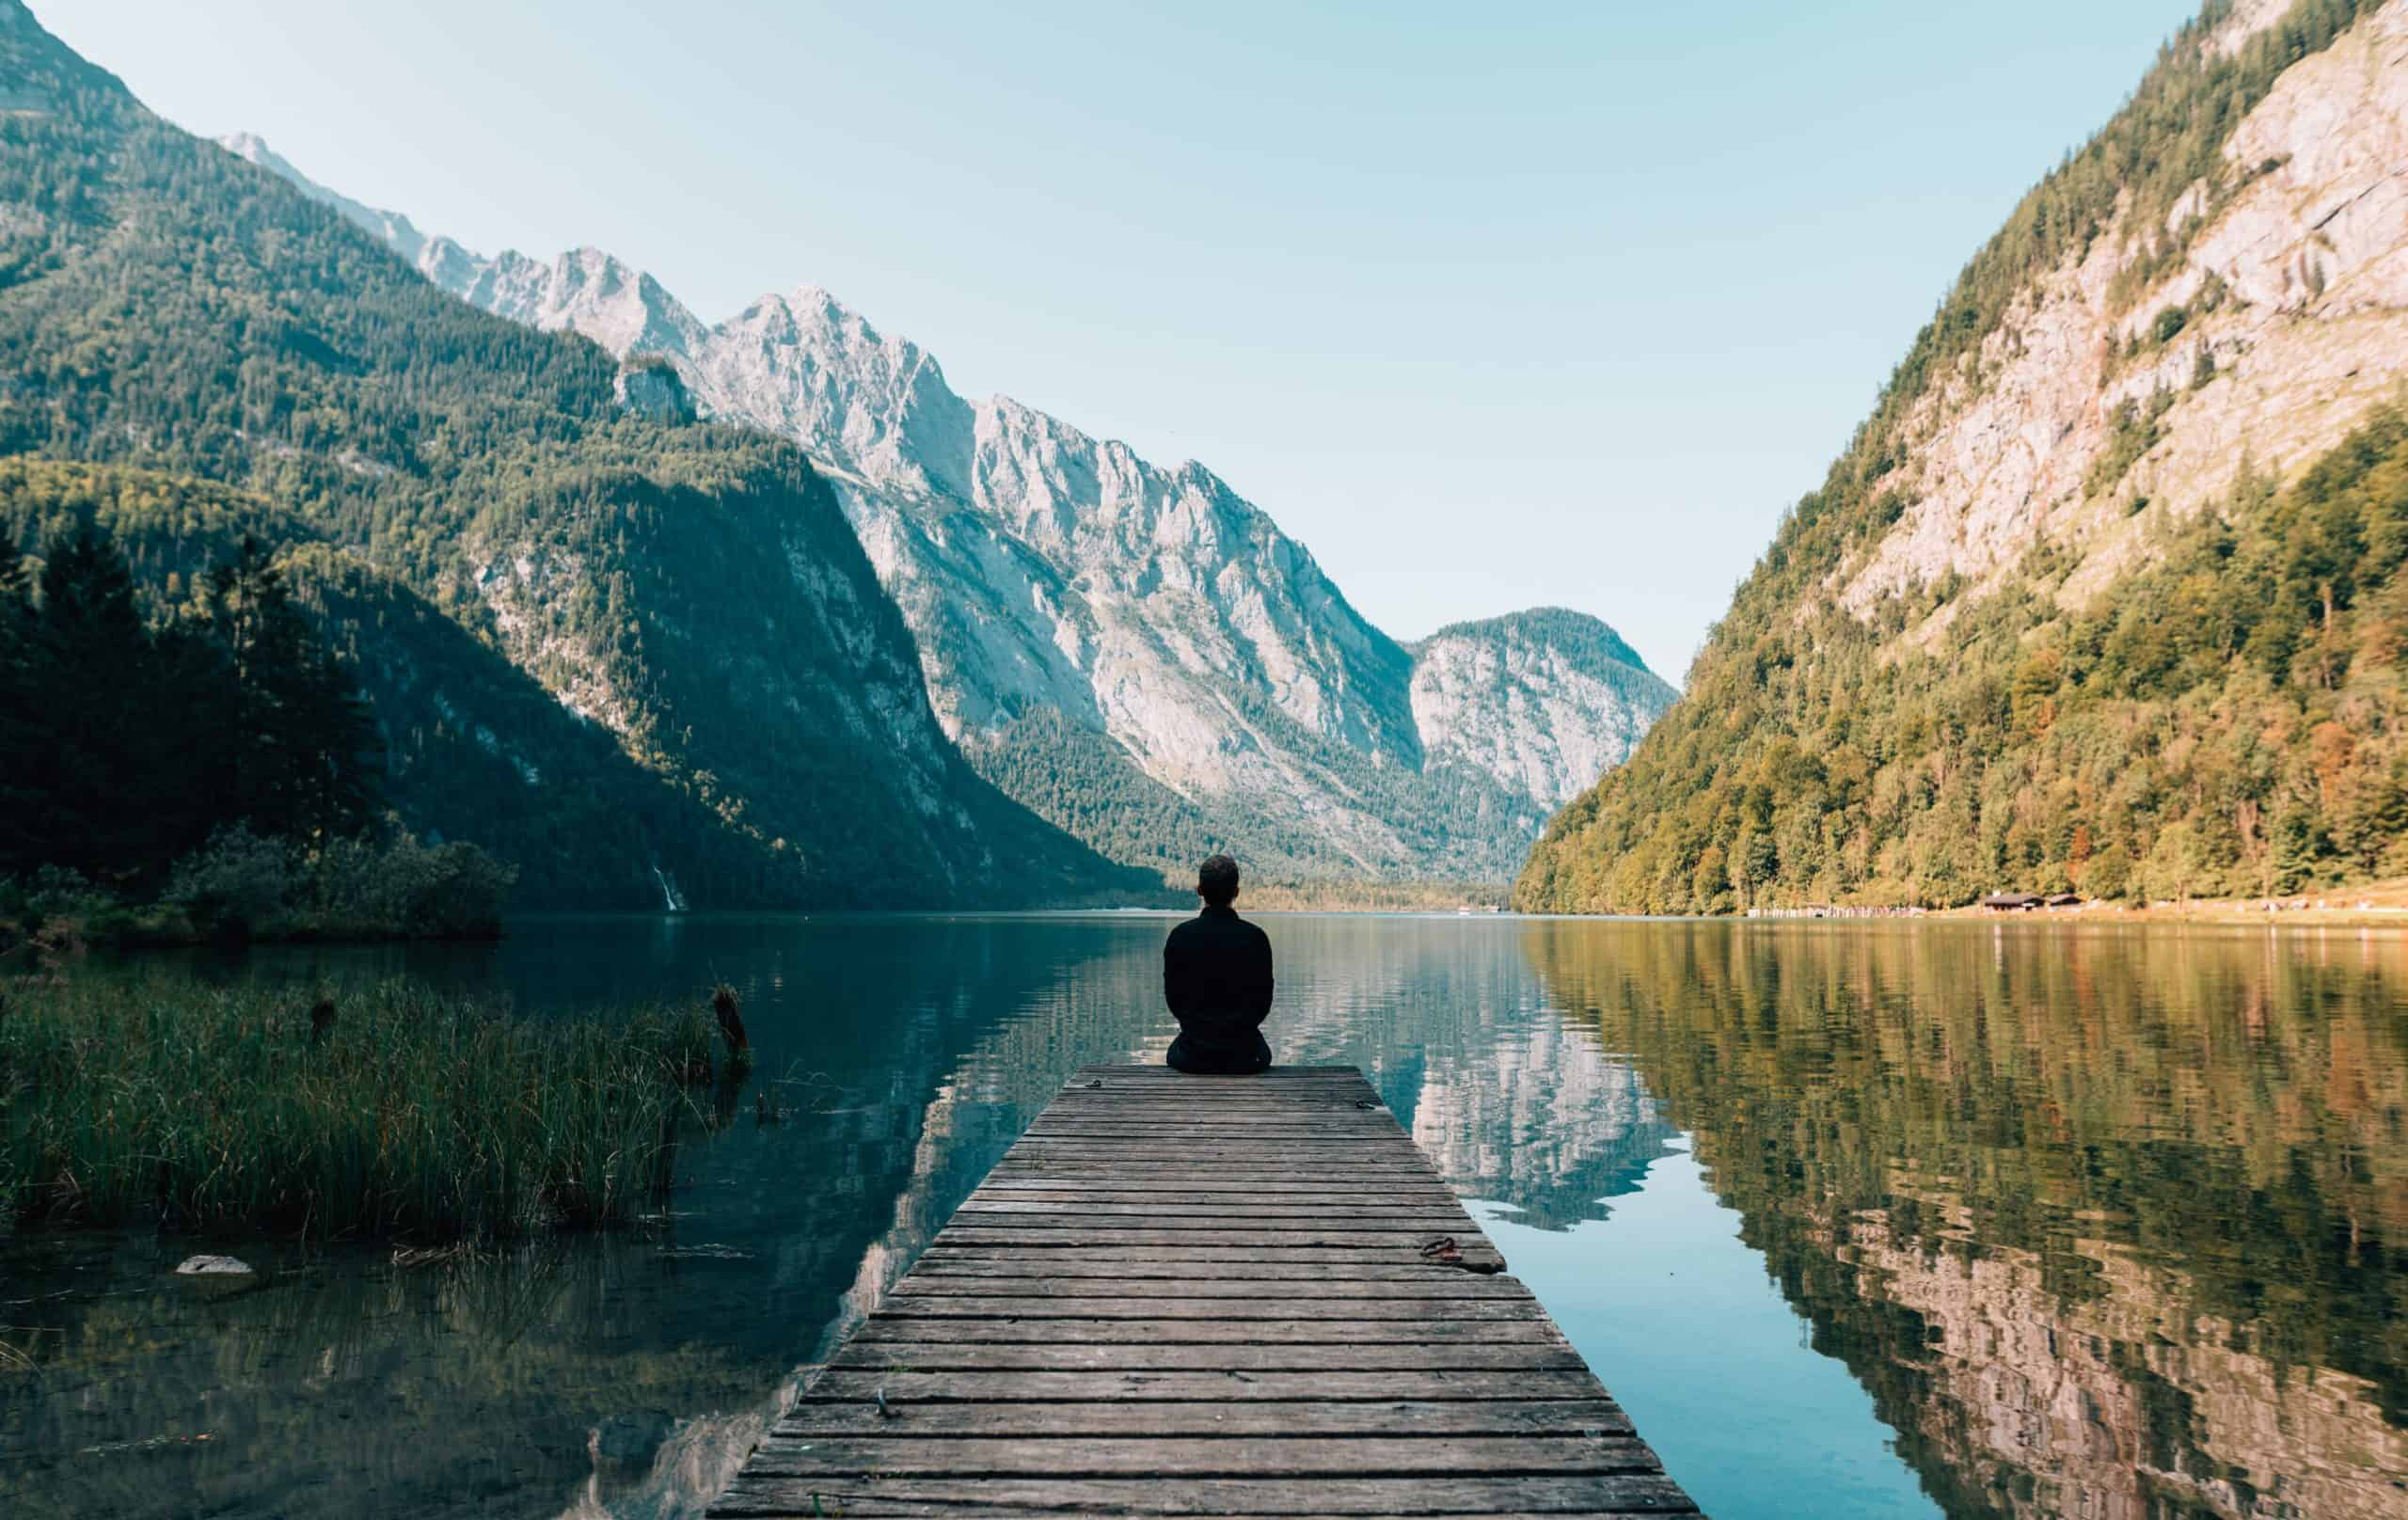 Essential Steps To Managing Personal Growth